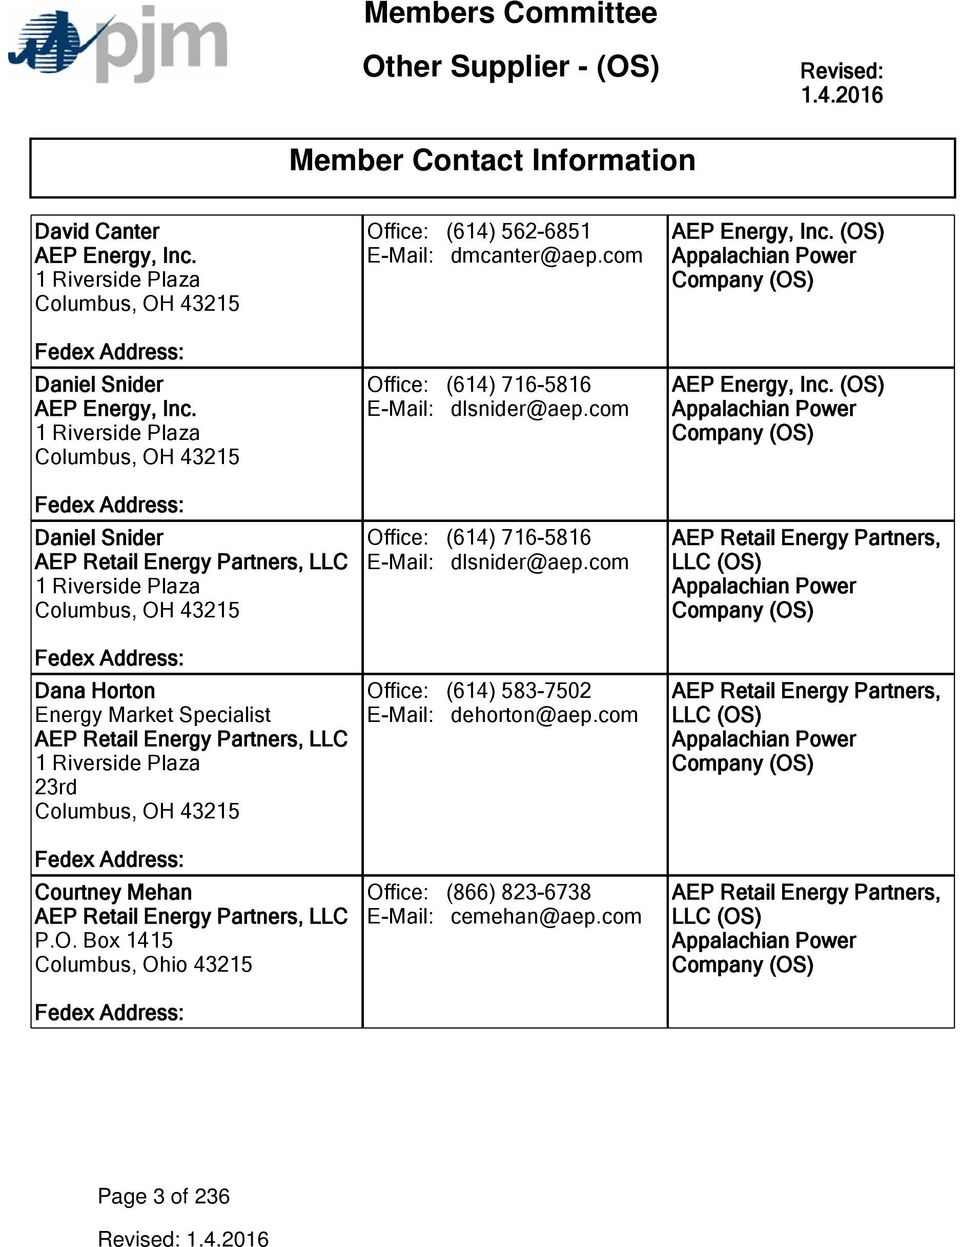 Members Committee Other Supplier Os Member Contact